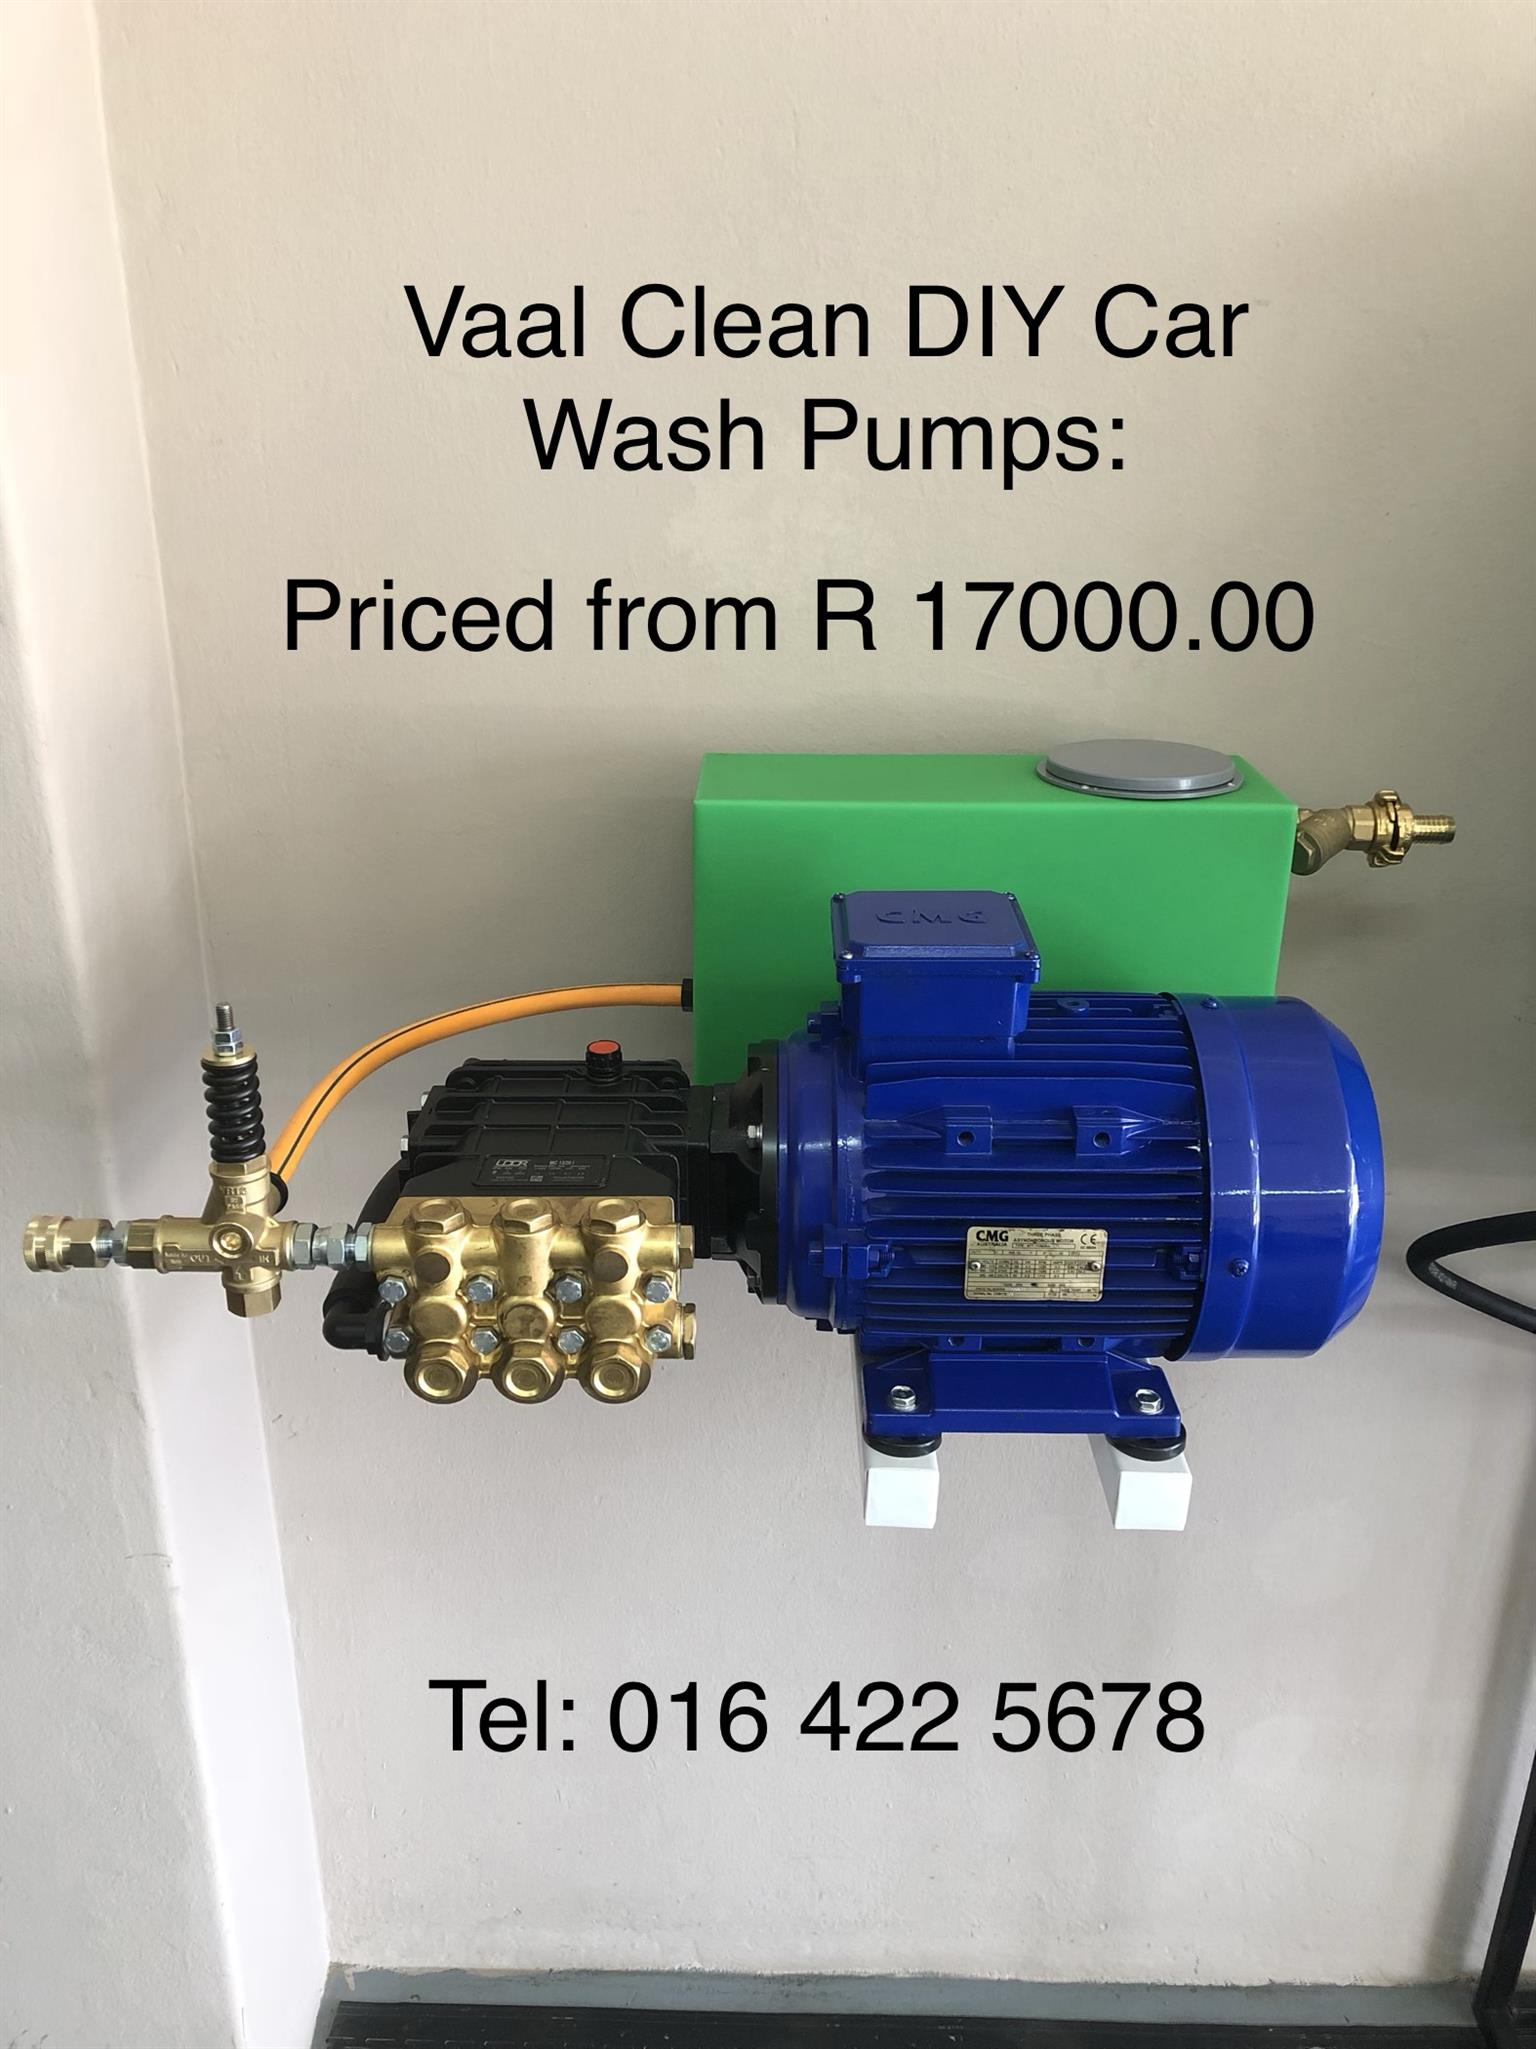 New Wall Mounted Car and Truck Wash Pumps